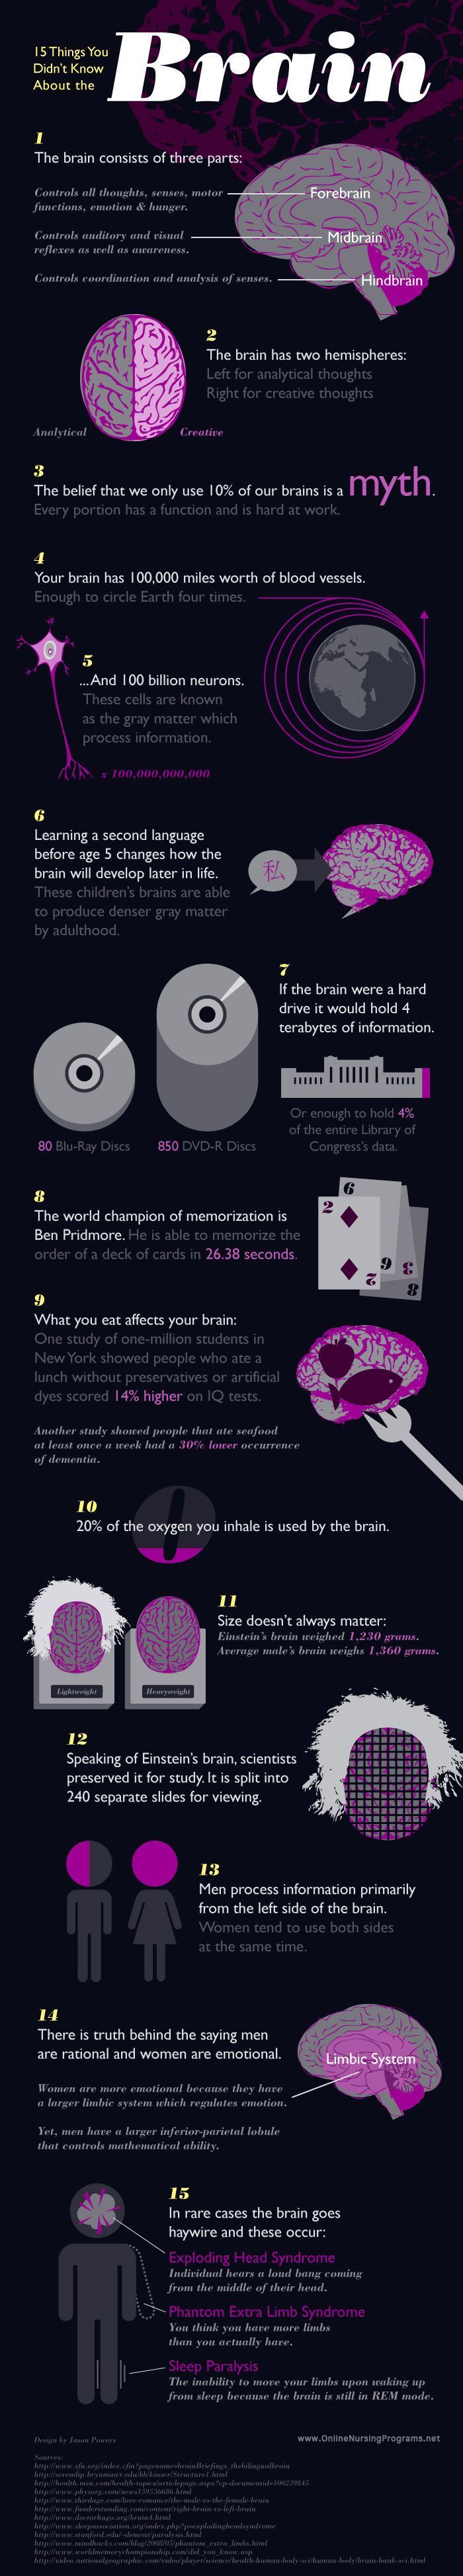 15 facts about the brain The human brain is the most amazing and baffling organ of our body as well as the source of many mysteries Although the human brain makes only 2...